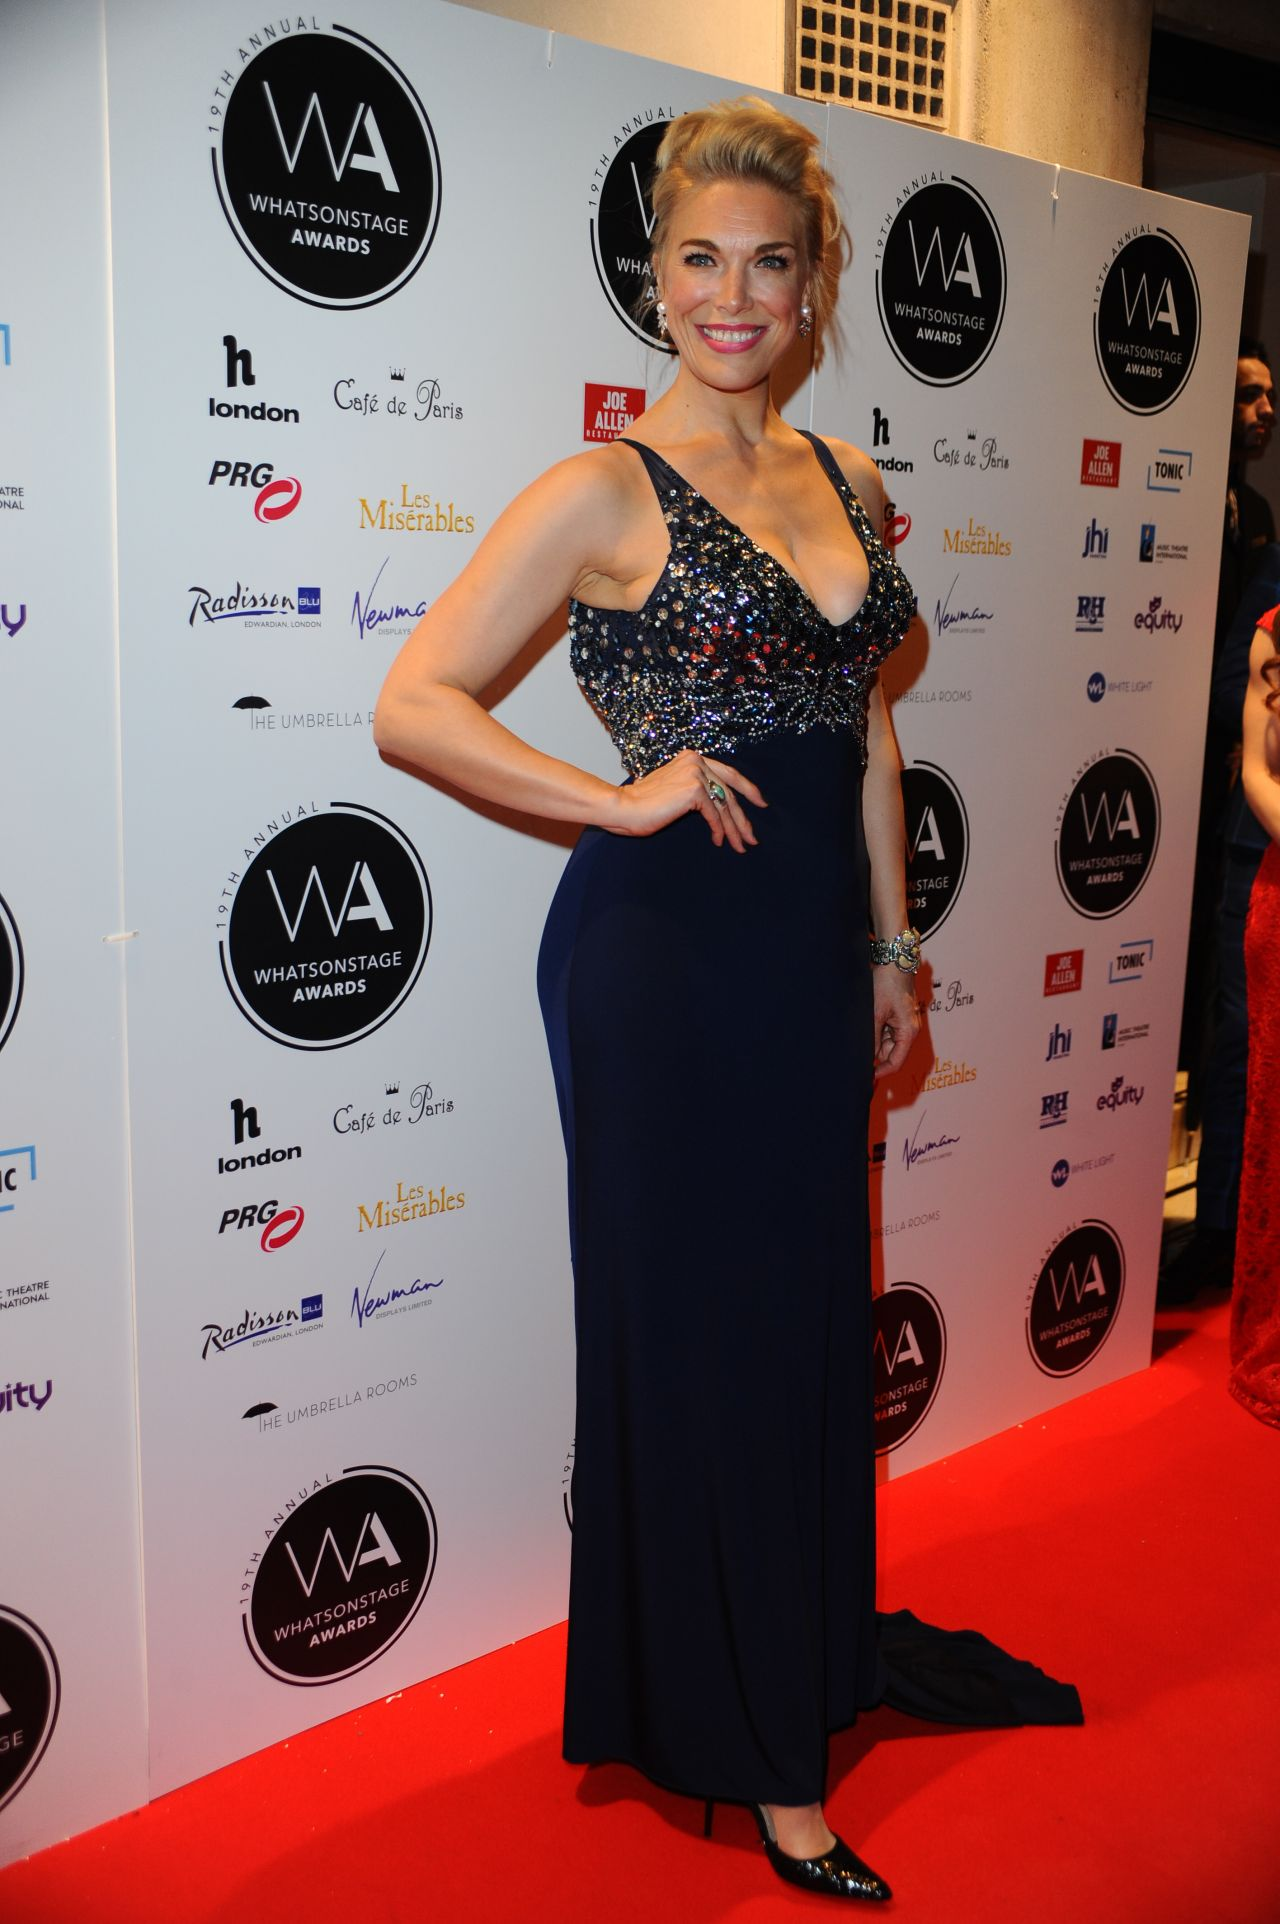 HANNAH WADDINGHAM at Whatsonstage Awards 2019 in London 03